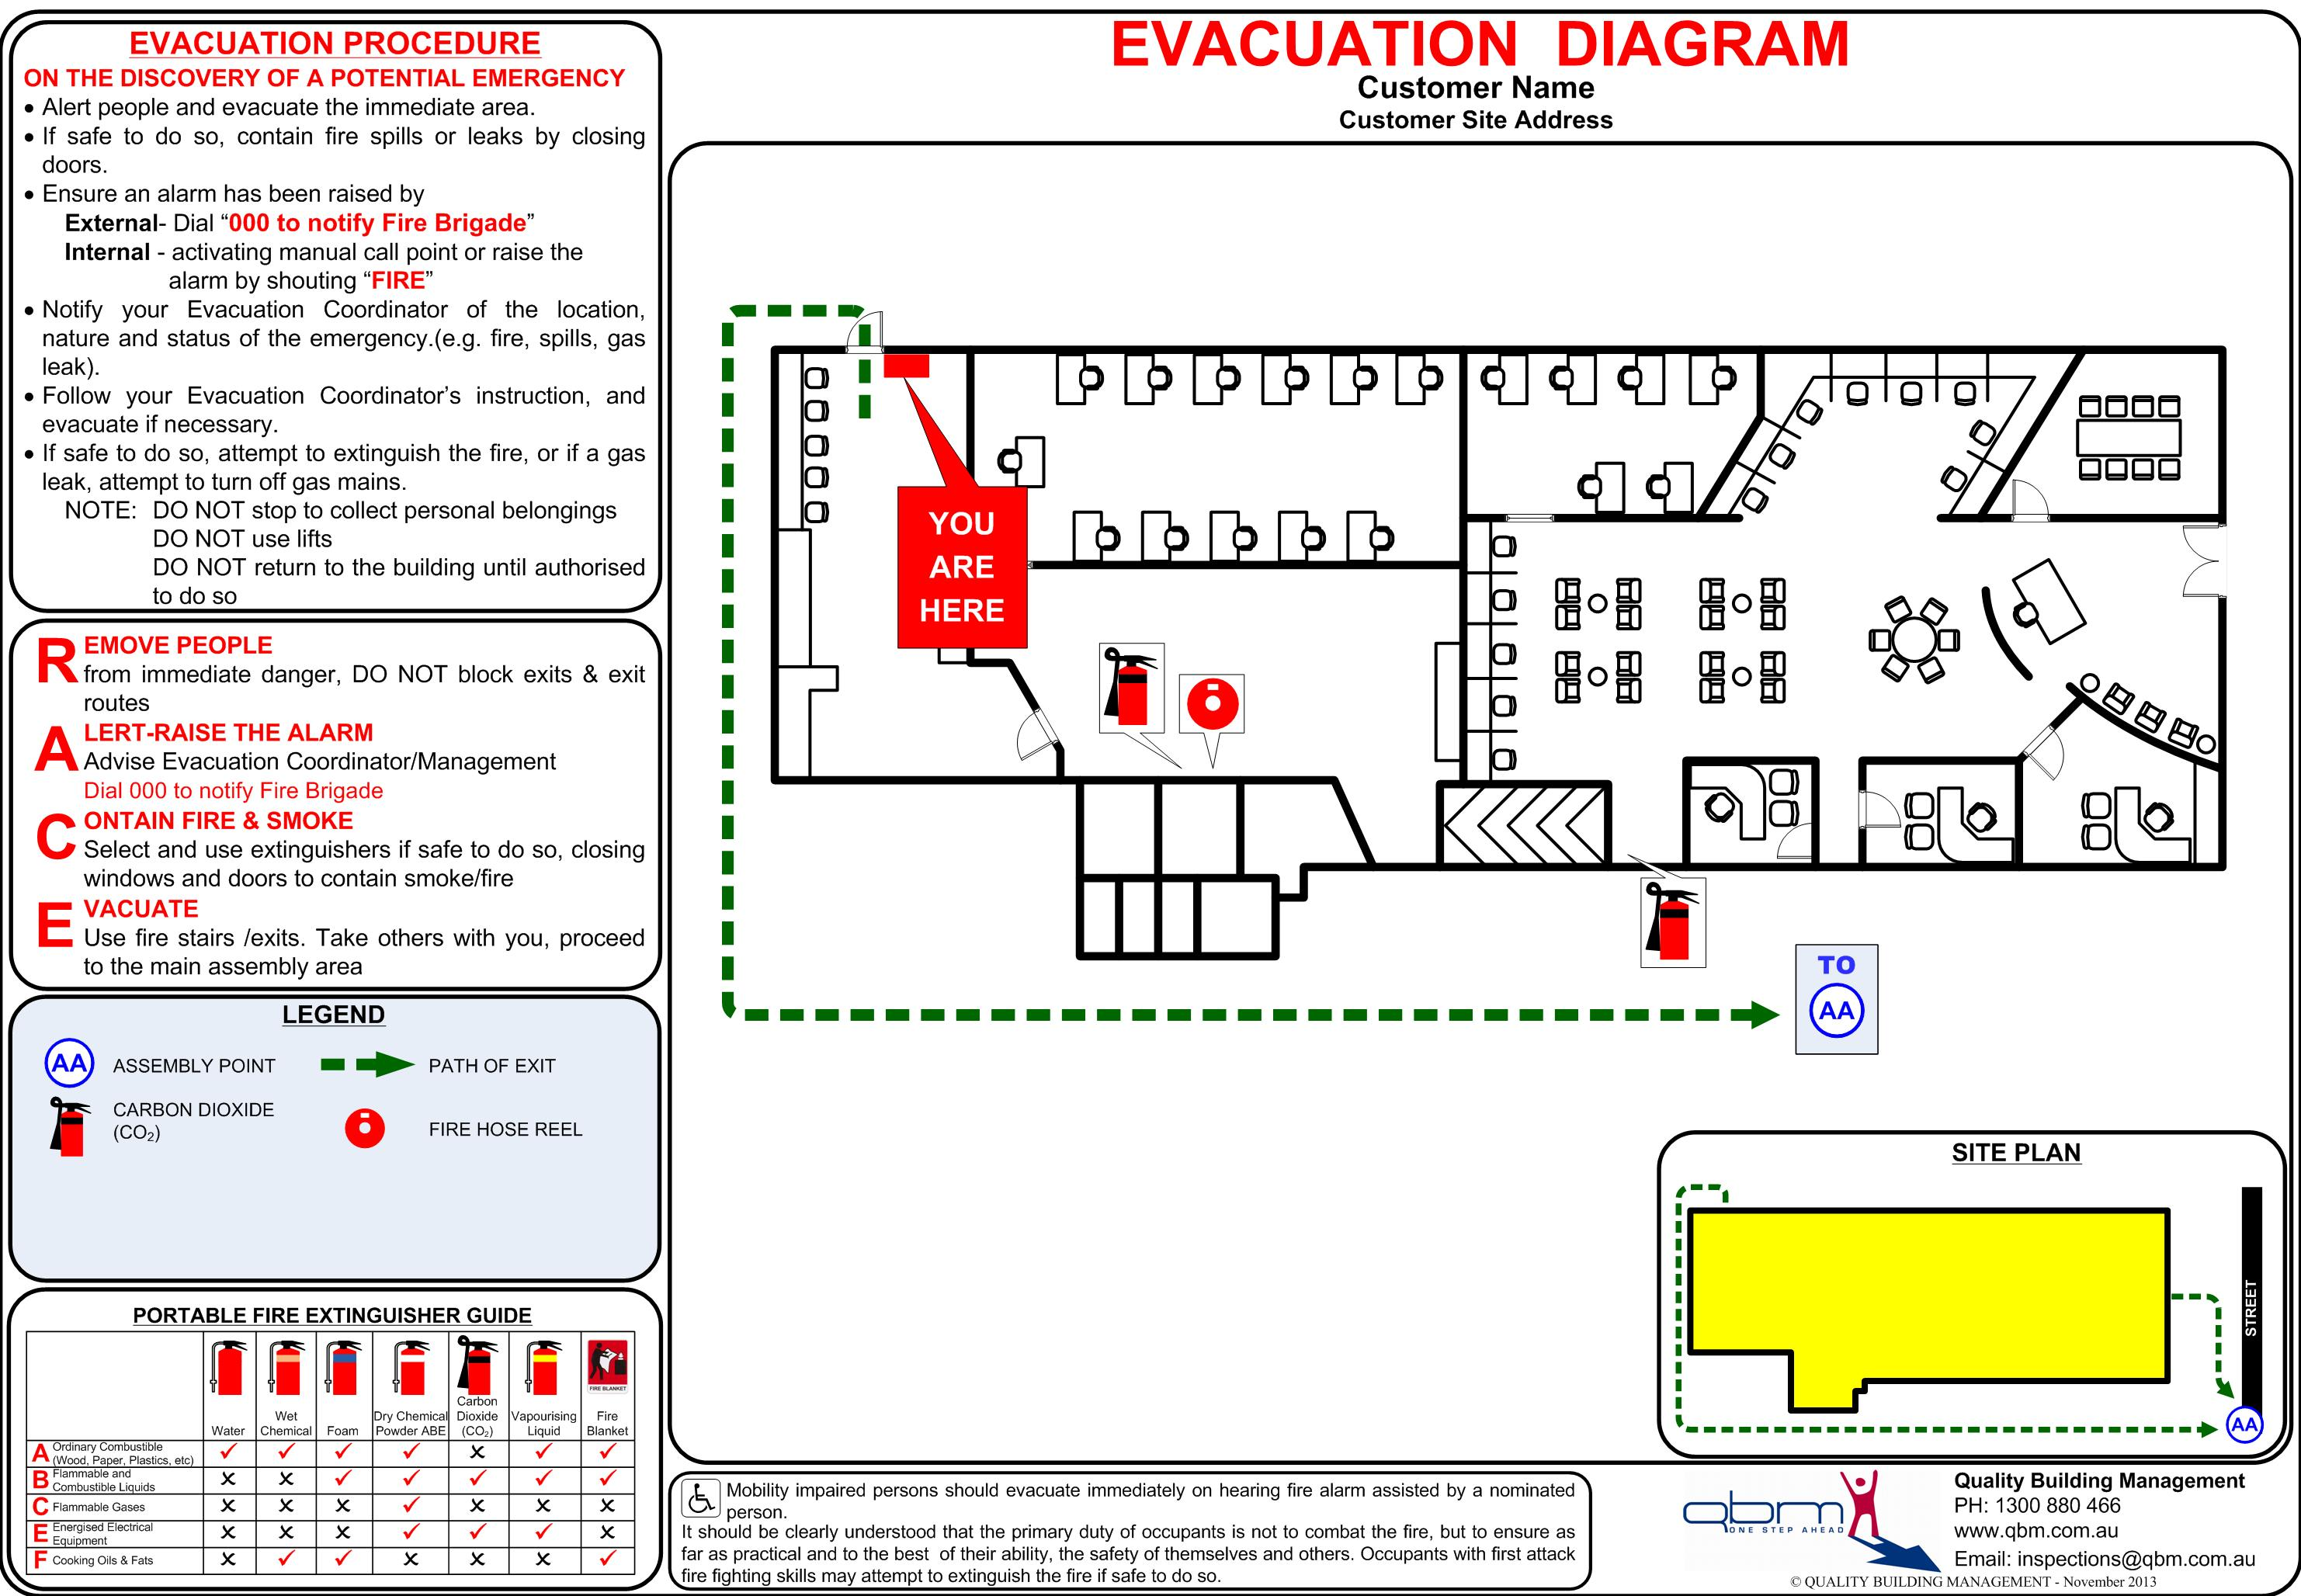 Evacuation Diagram